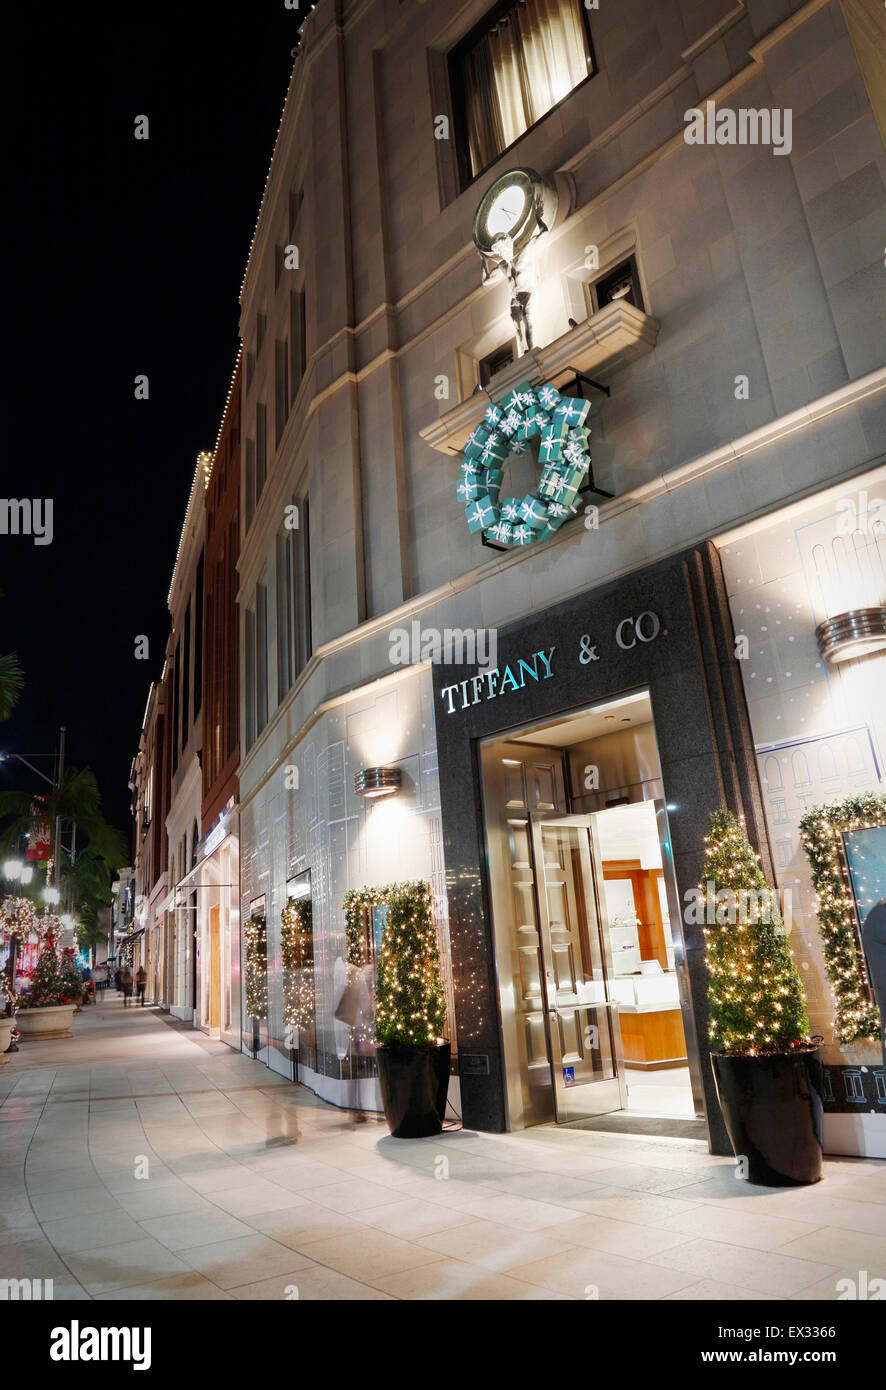 Tiffany And Co Christmas Ornaments Part - 49: Stock Photo - Tiffany U0026 Co Store On Rodeo Drive, Beverly Hills,Los Angeles, At Night With Christmas Decorations